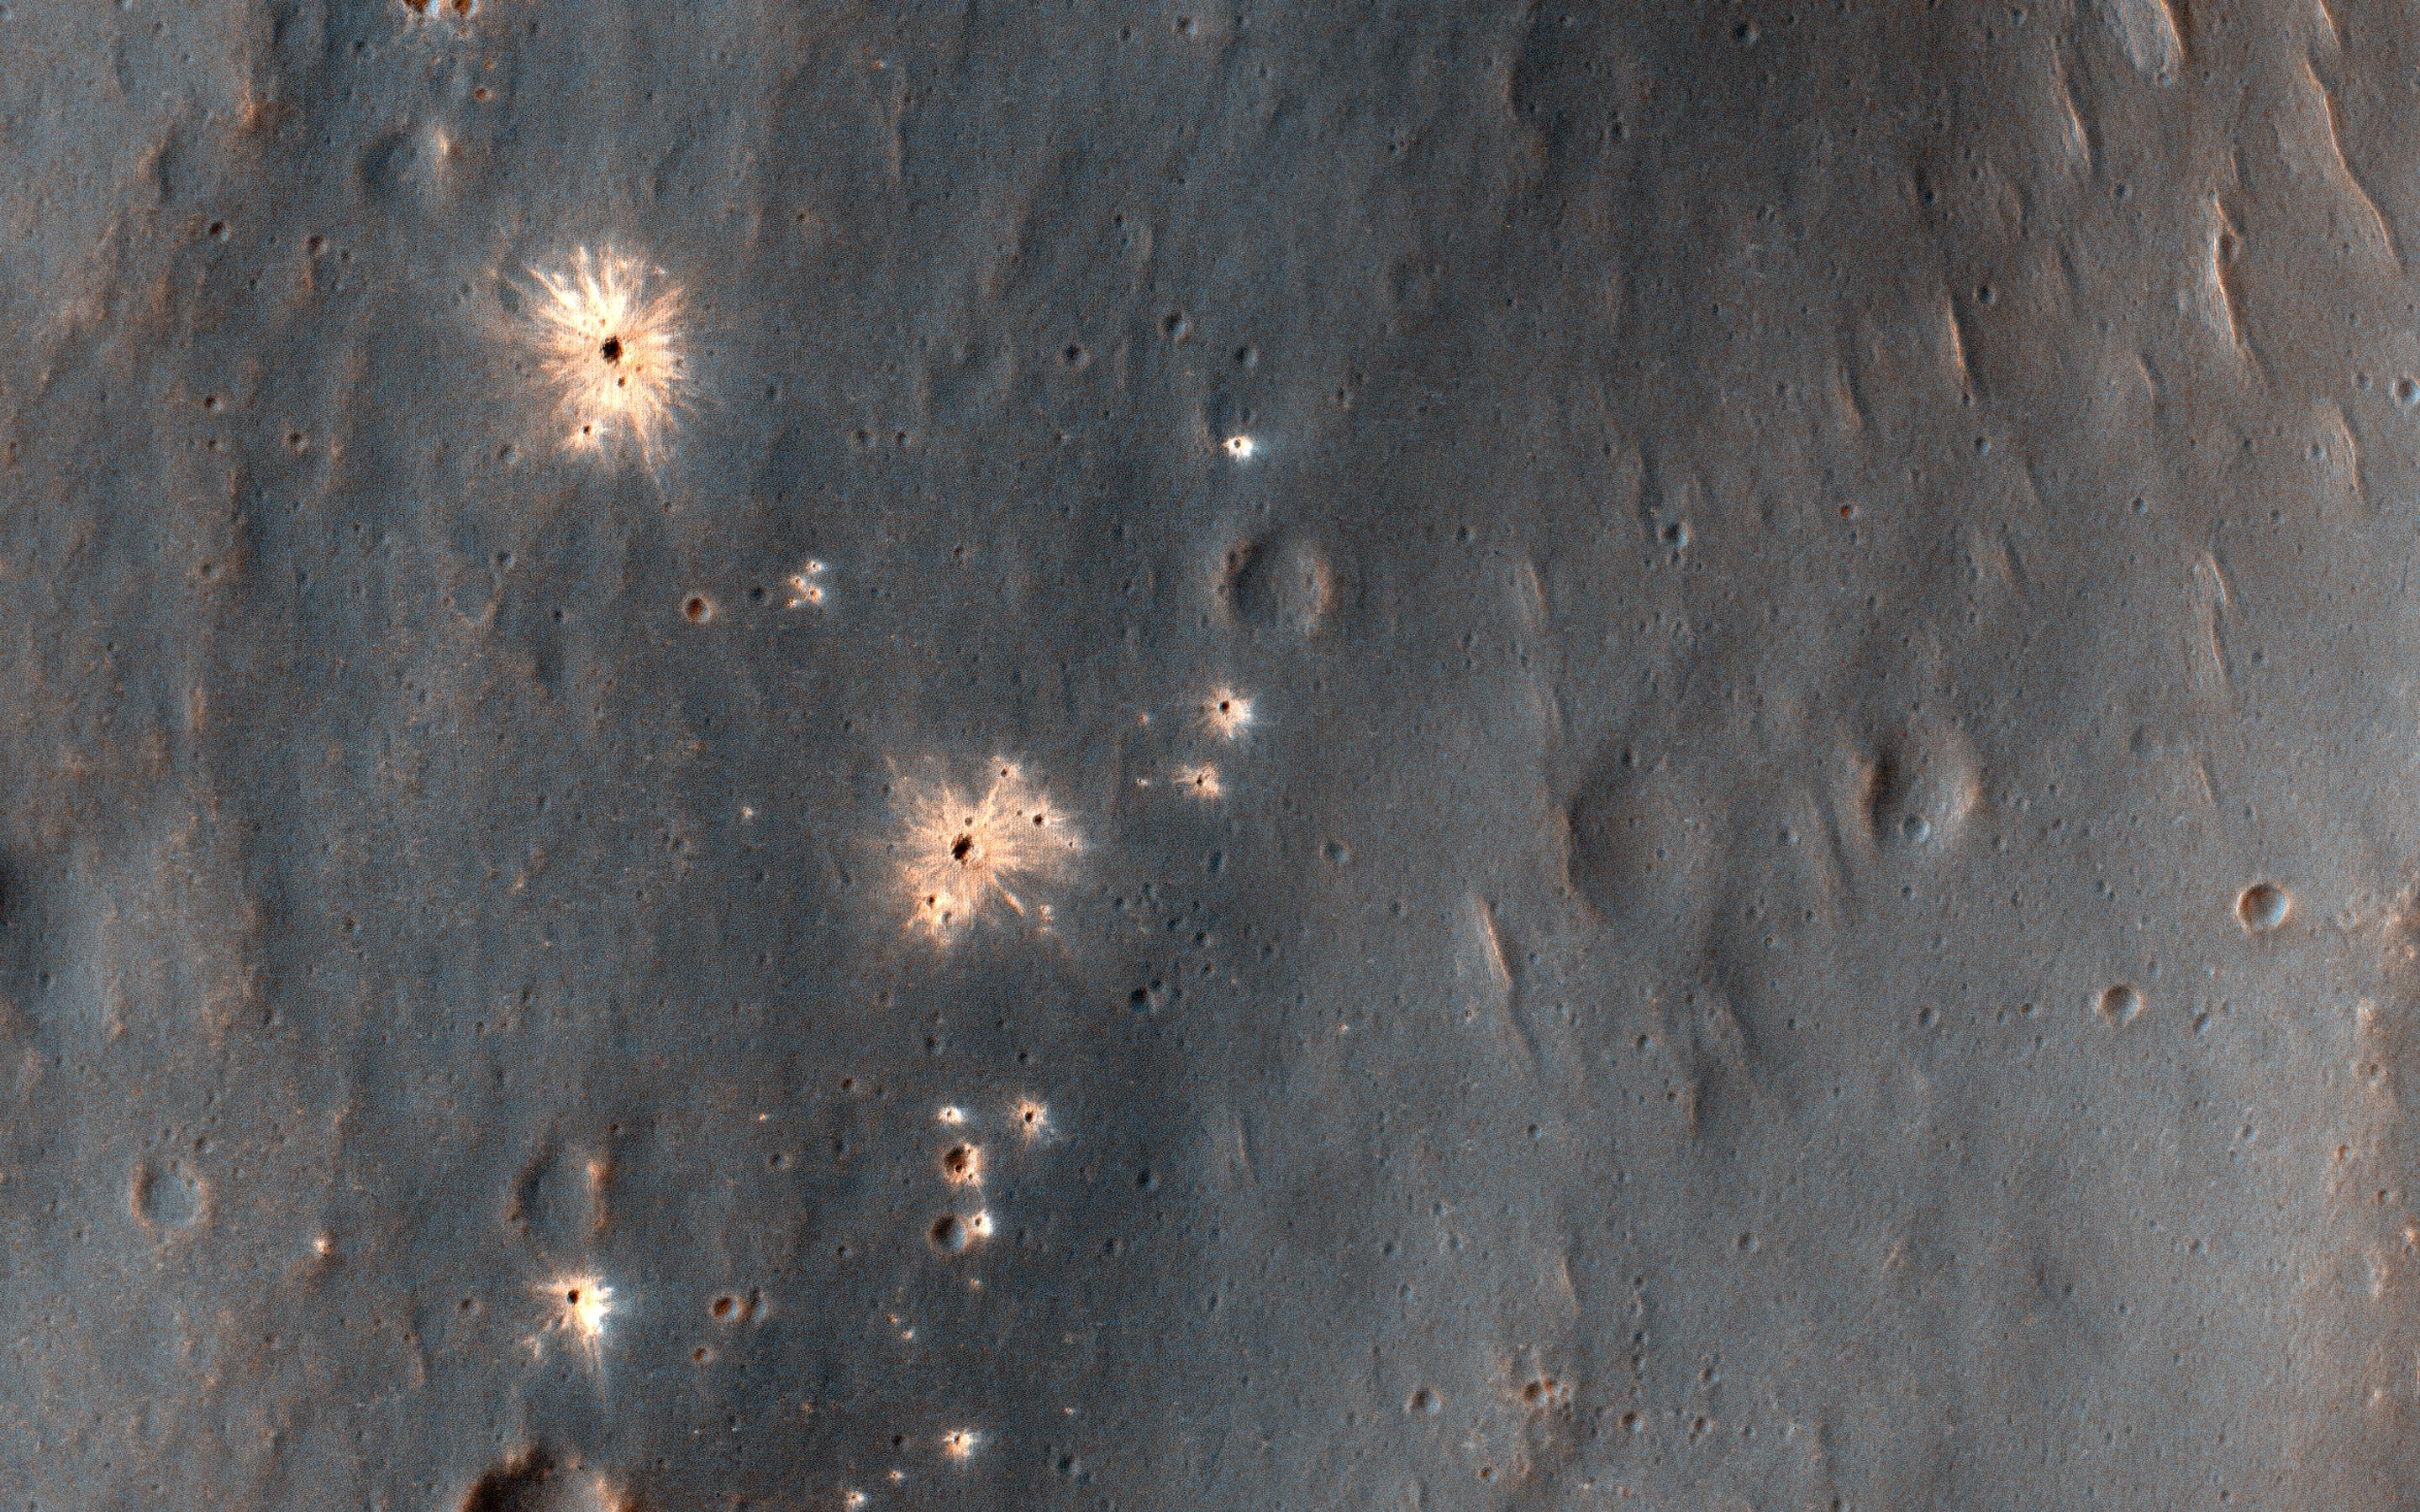 This image acquired on December 9, 2018 by NASAs Mars Reconnaissance Orbiter, shows a recent impact in Noachis Terra in the southern mid-latitudes of Mars.